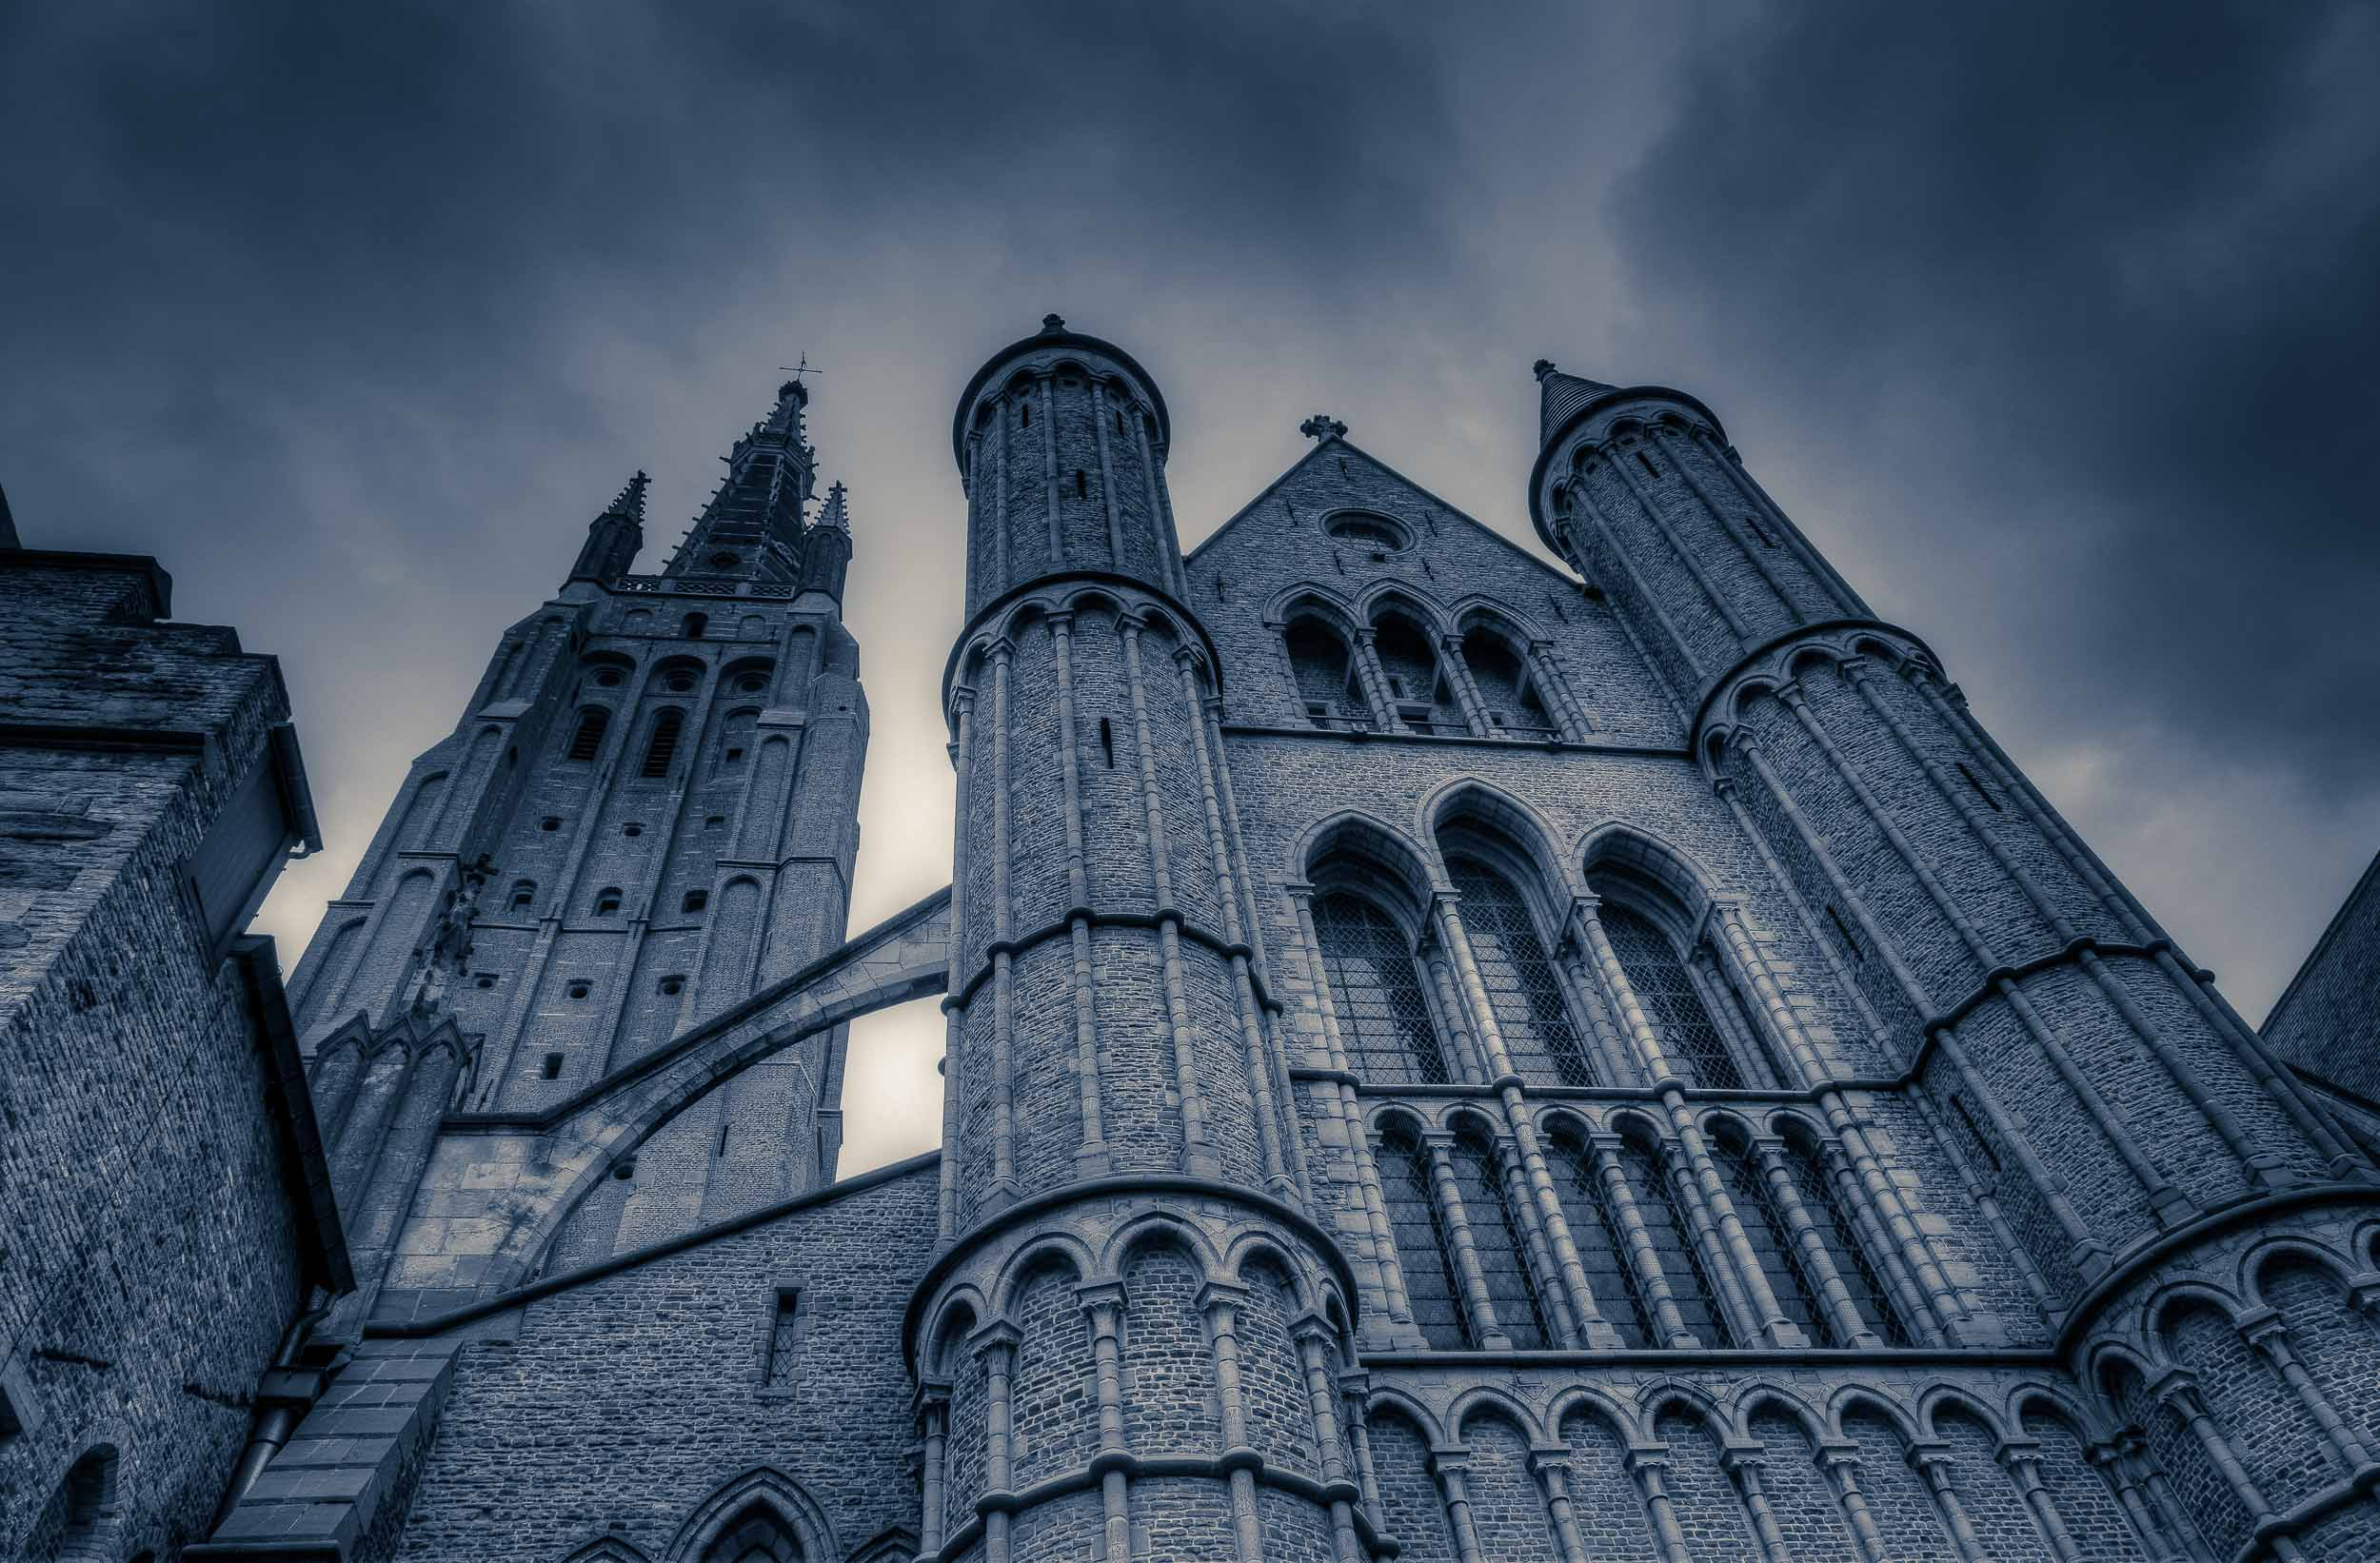 A dramatic exterior view of the    Church Of Our Lady    in    Bruges, Belgium   .